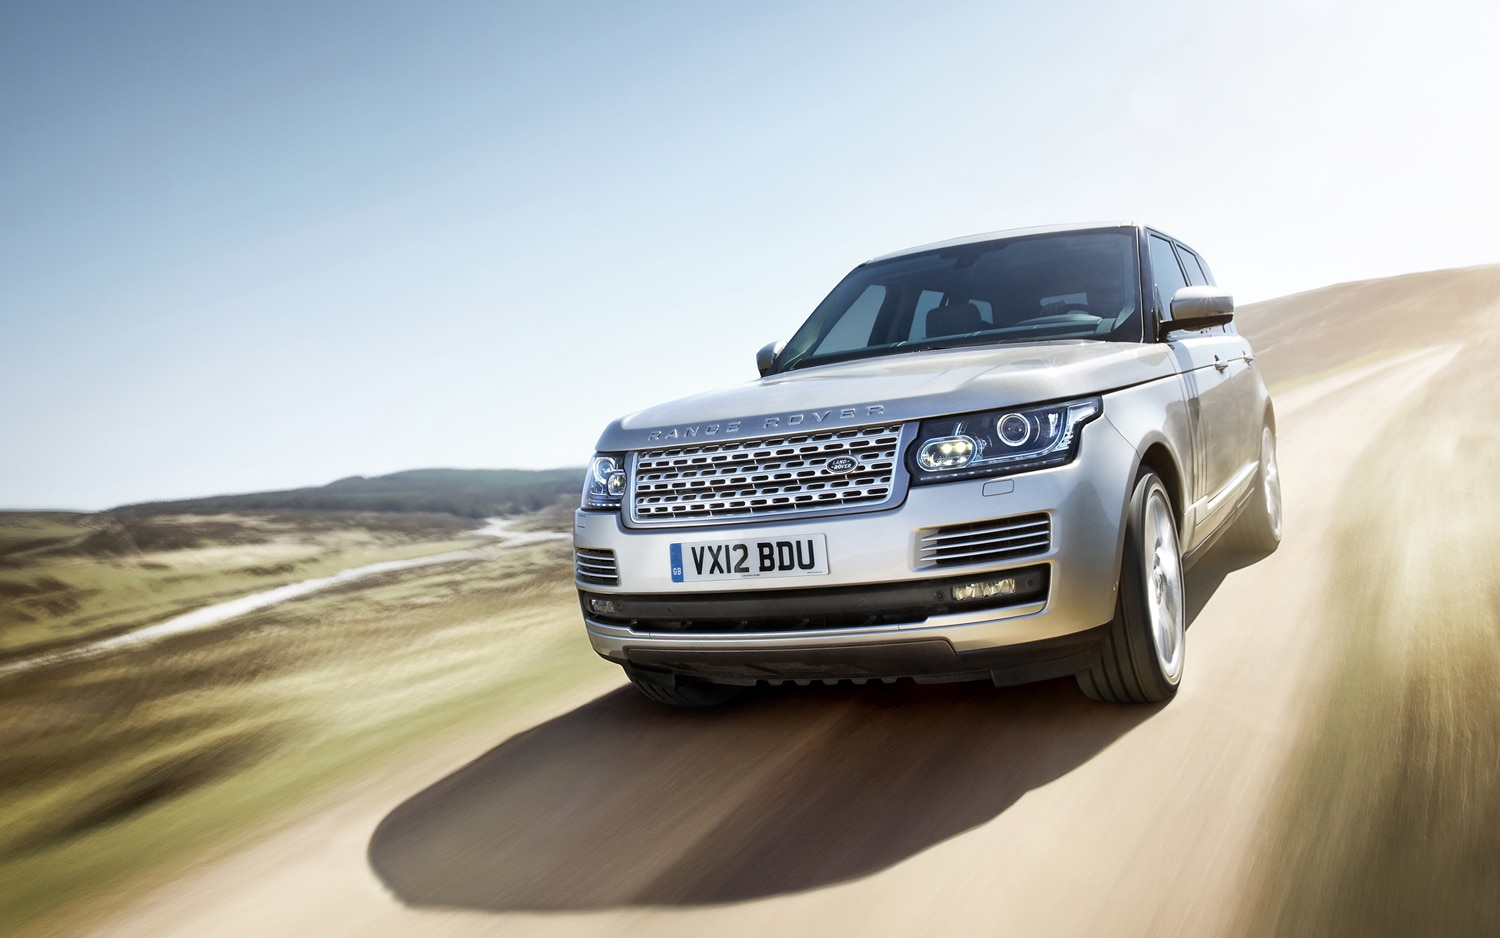 2013 Land Rover Range Rover Front End In Motion 9